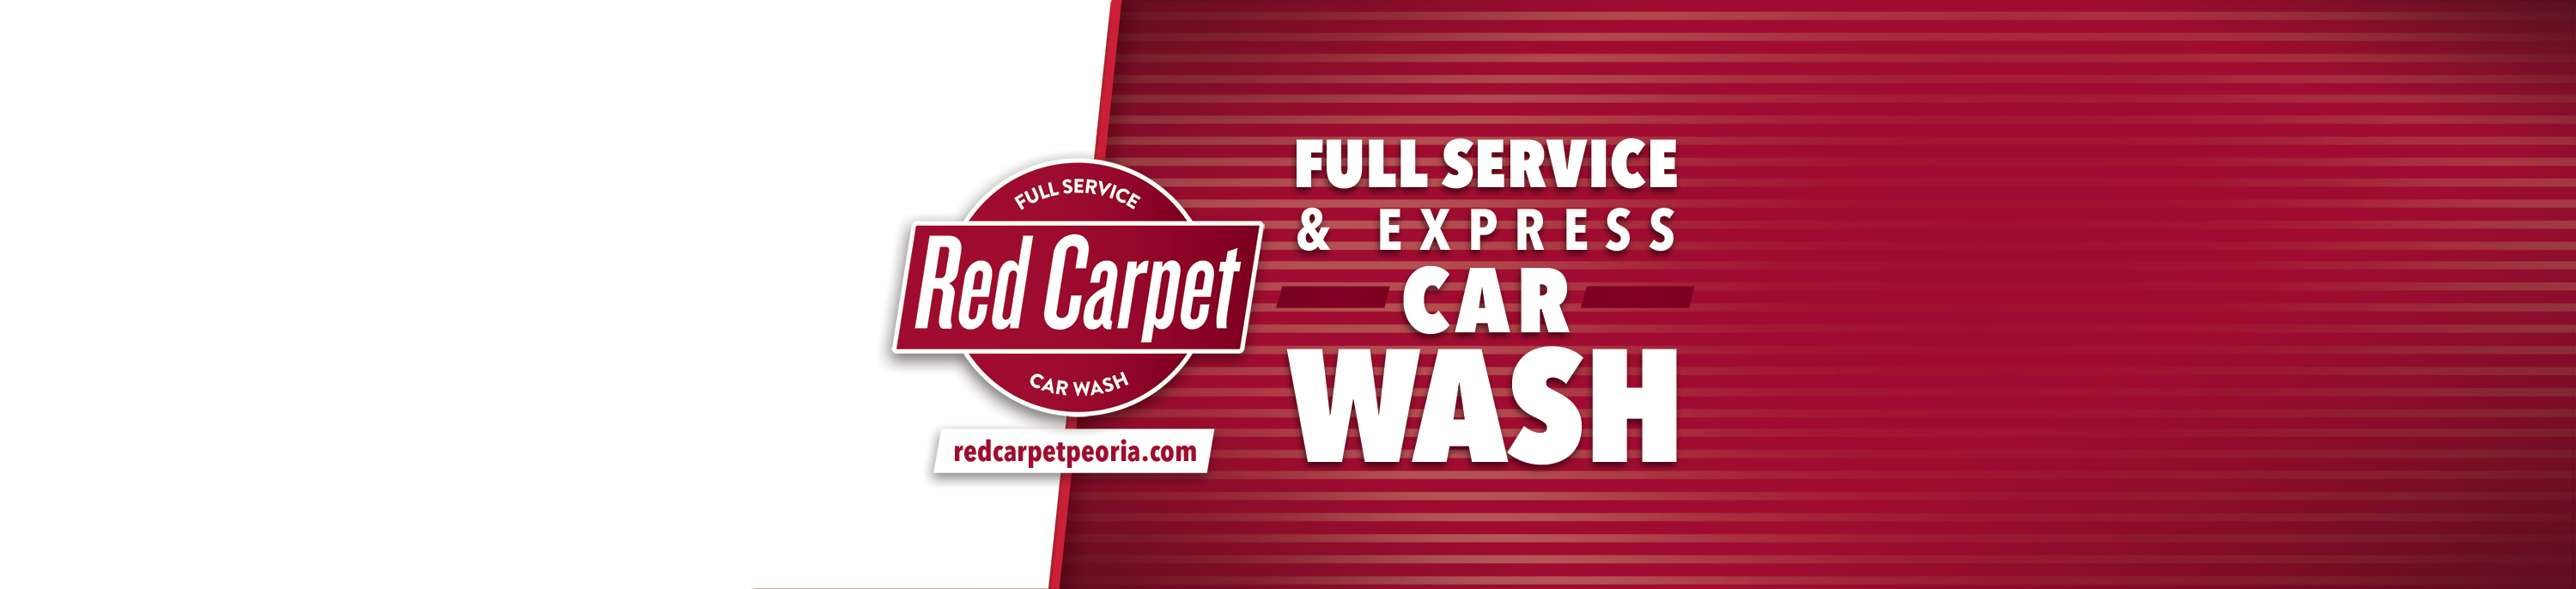 Full Service & Express Car Wash